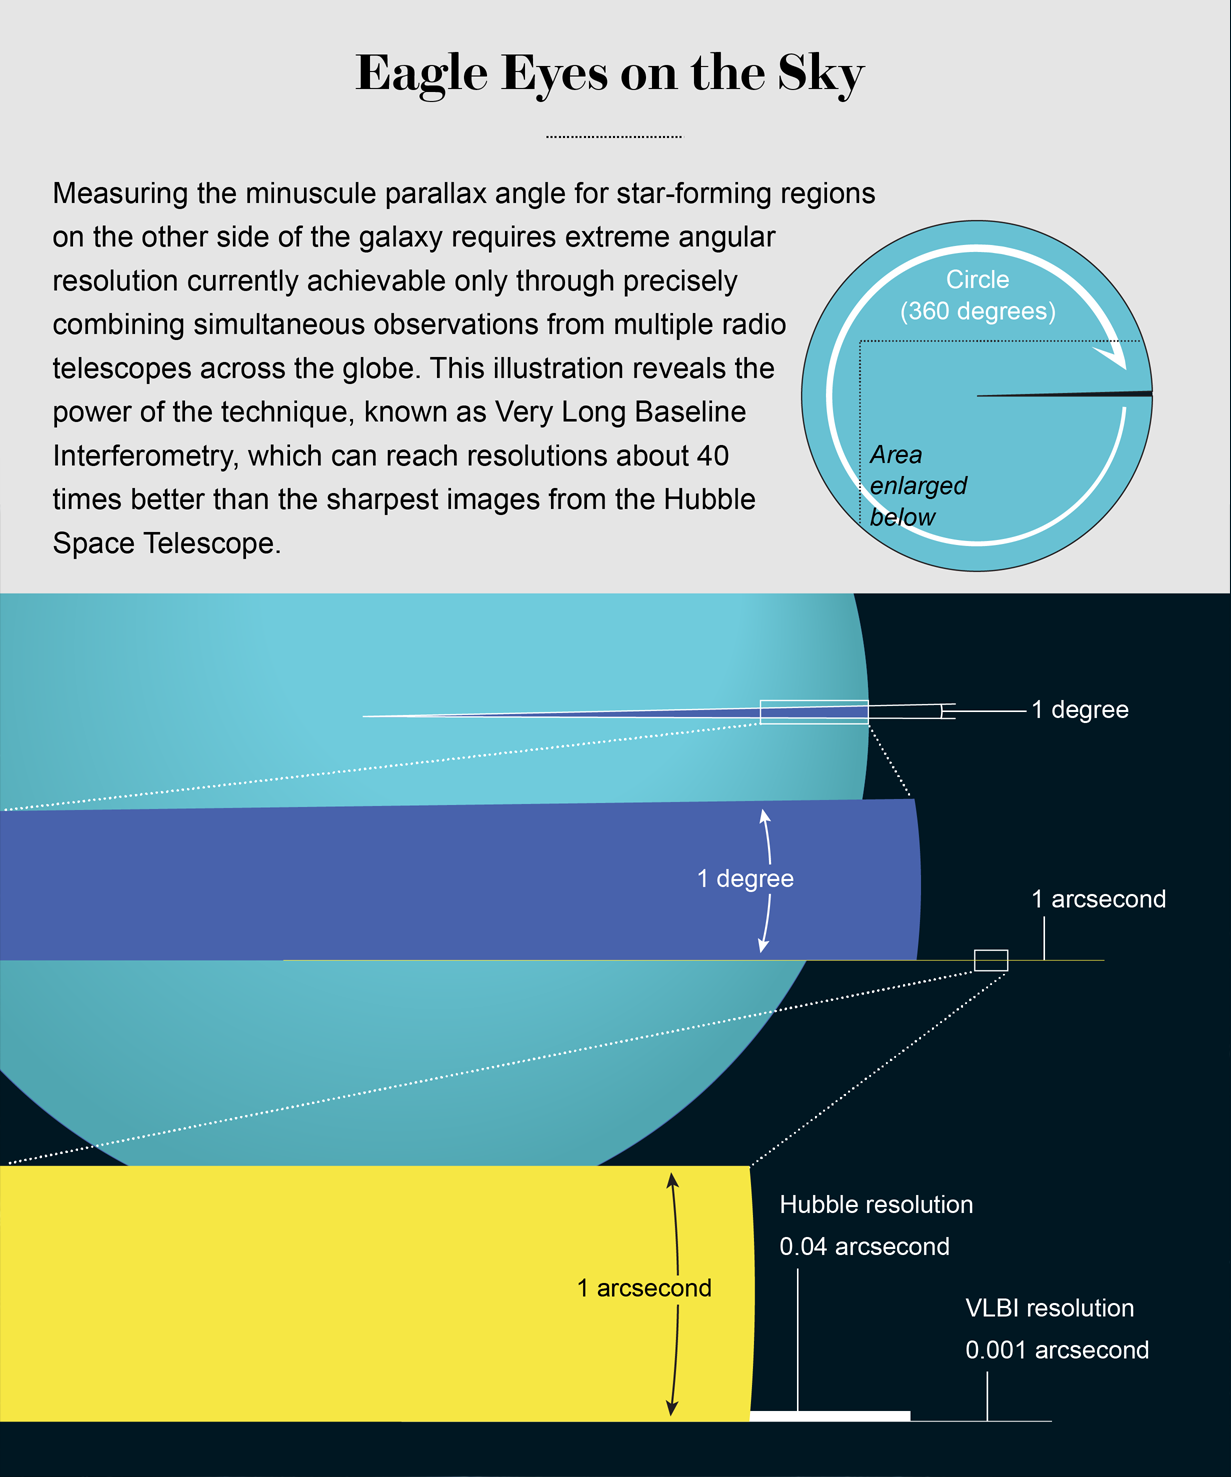 Chart compares the minuscule parallax angles achieved with Hubble (0.04 arcsecond) and the Very Long Baseline Interferometry technique (0.001 arcsecond)